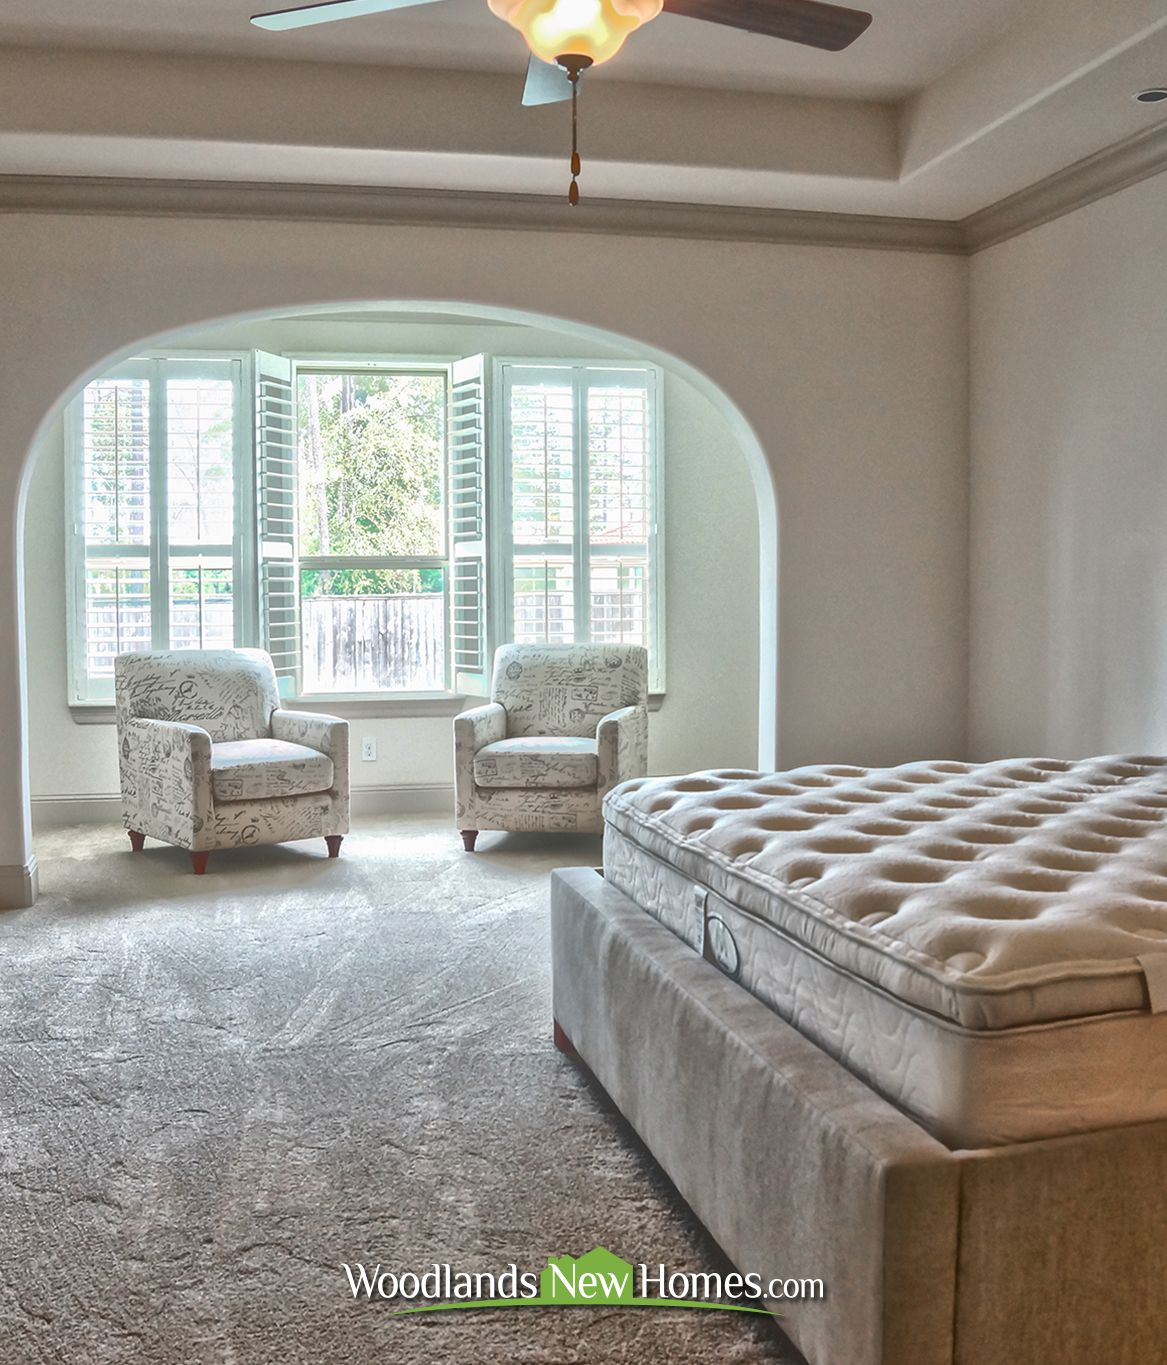 #masterbedroom With Private #sittingarea. #bed #carpet